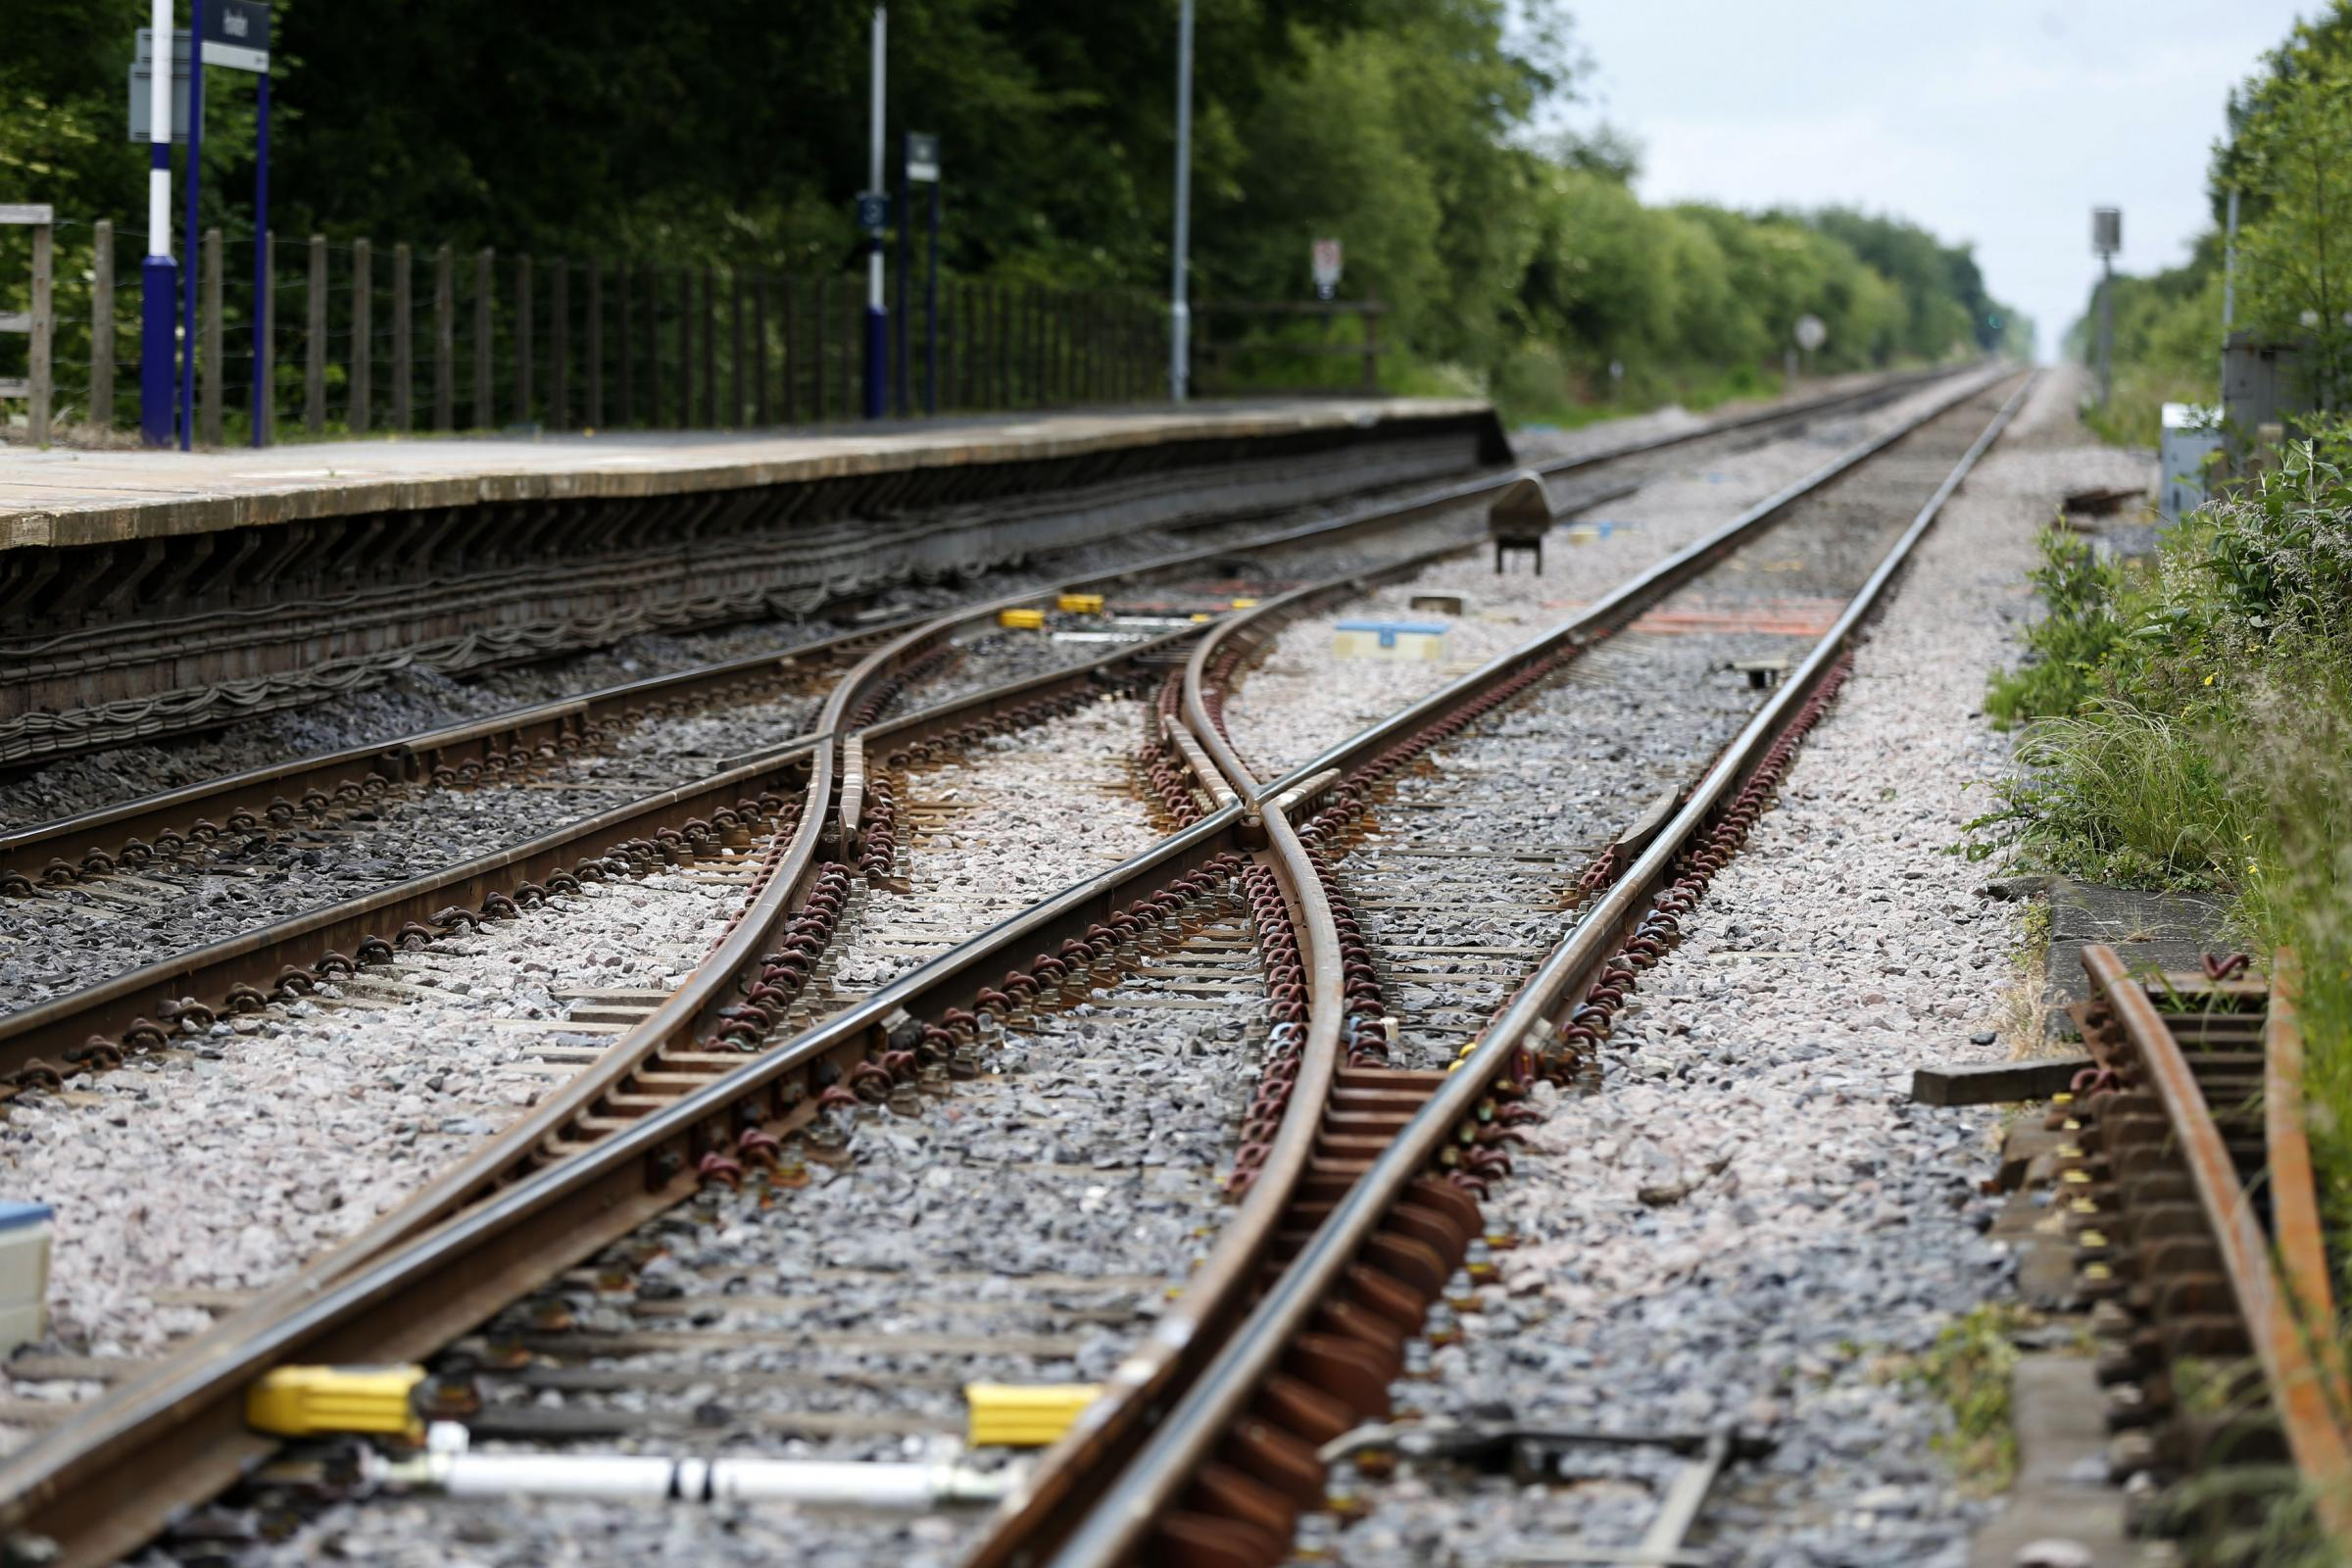 Villagers complain after noisy rail works at 2am leave children 'crying and screaming'. Picture: Lynne Cameron/PA Wire